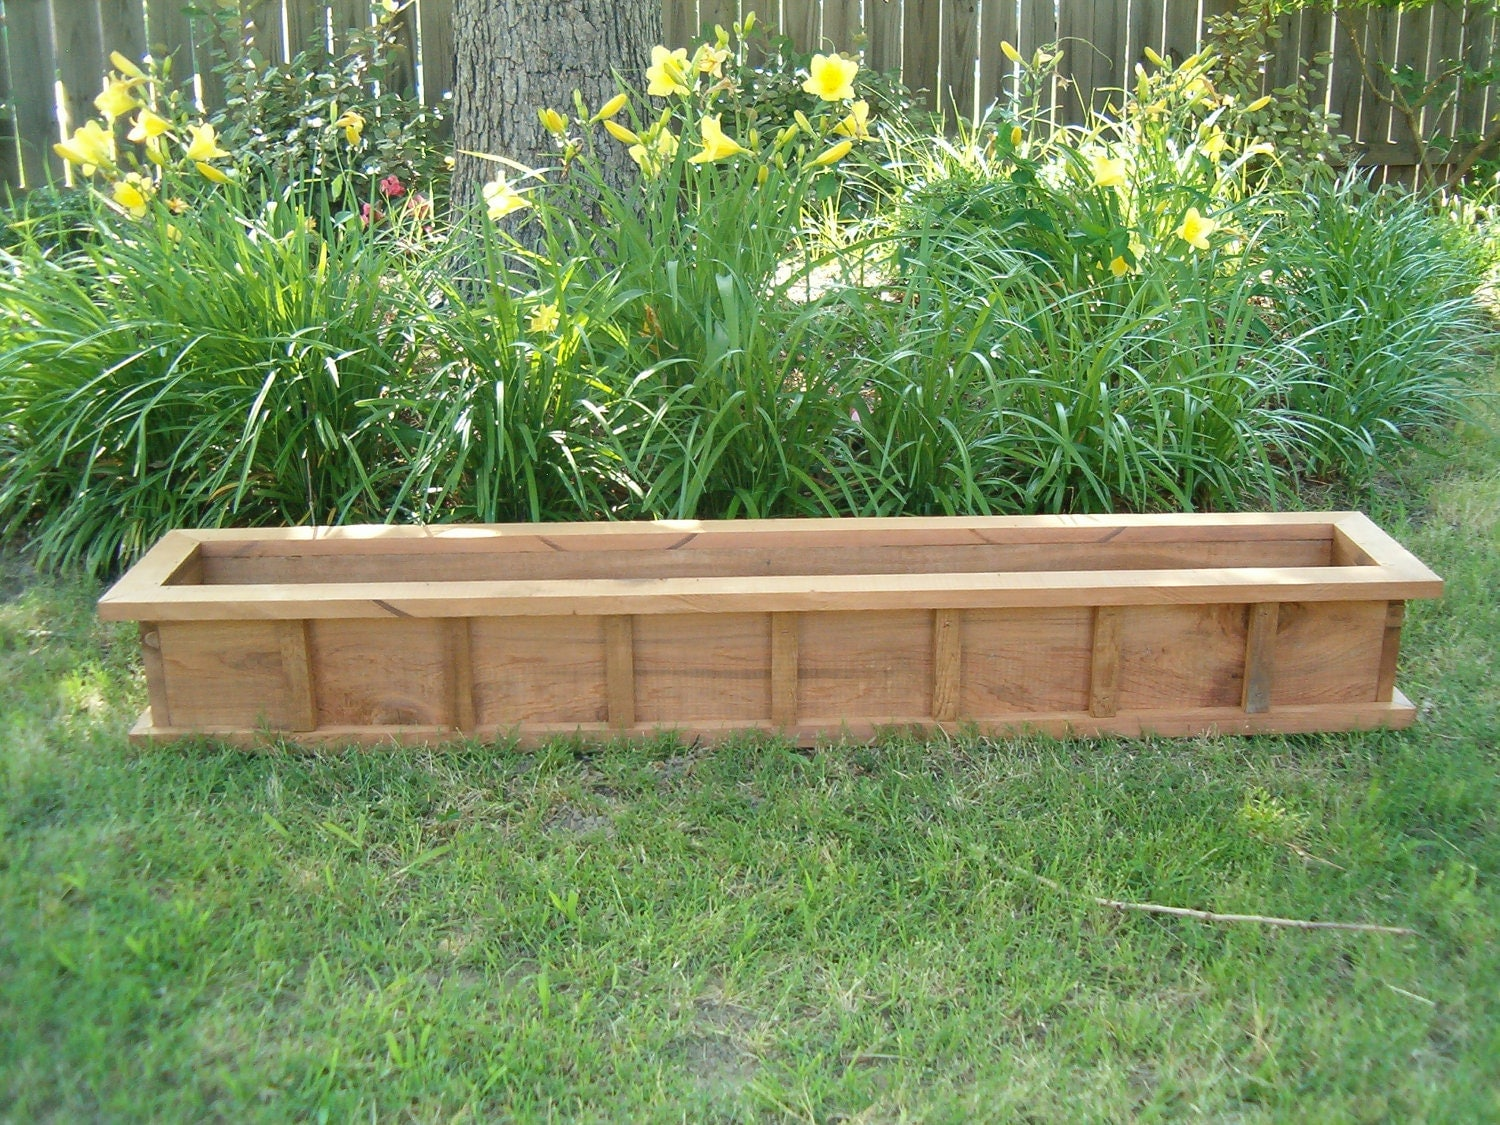 42 window box cypress wooden planter flower new wood for Wooden garden box designs